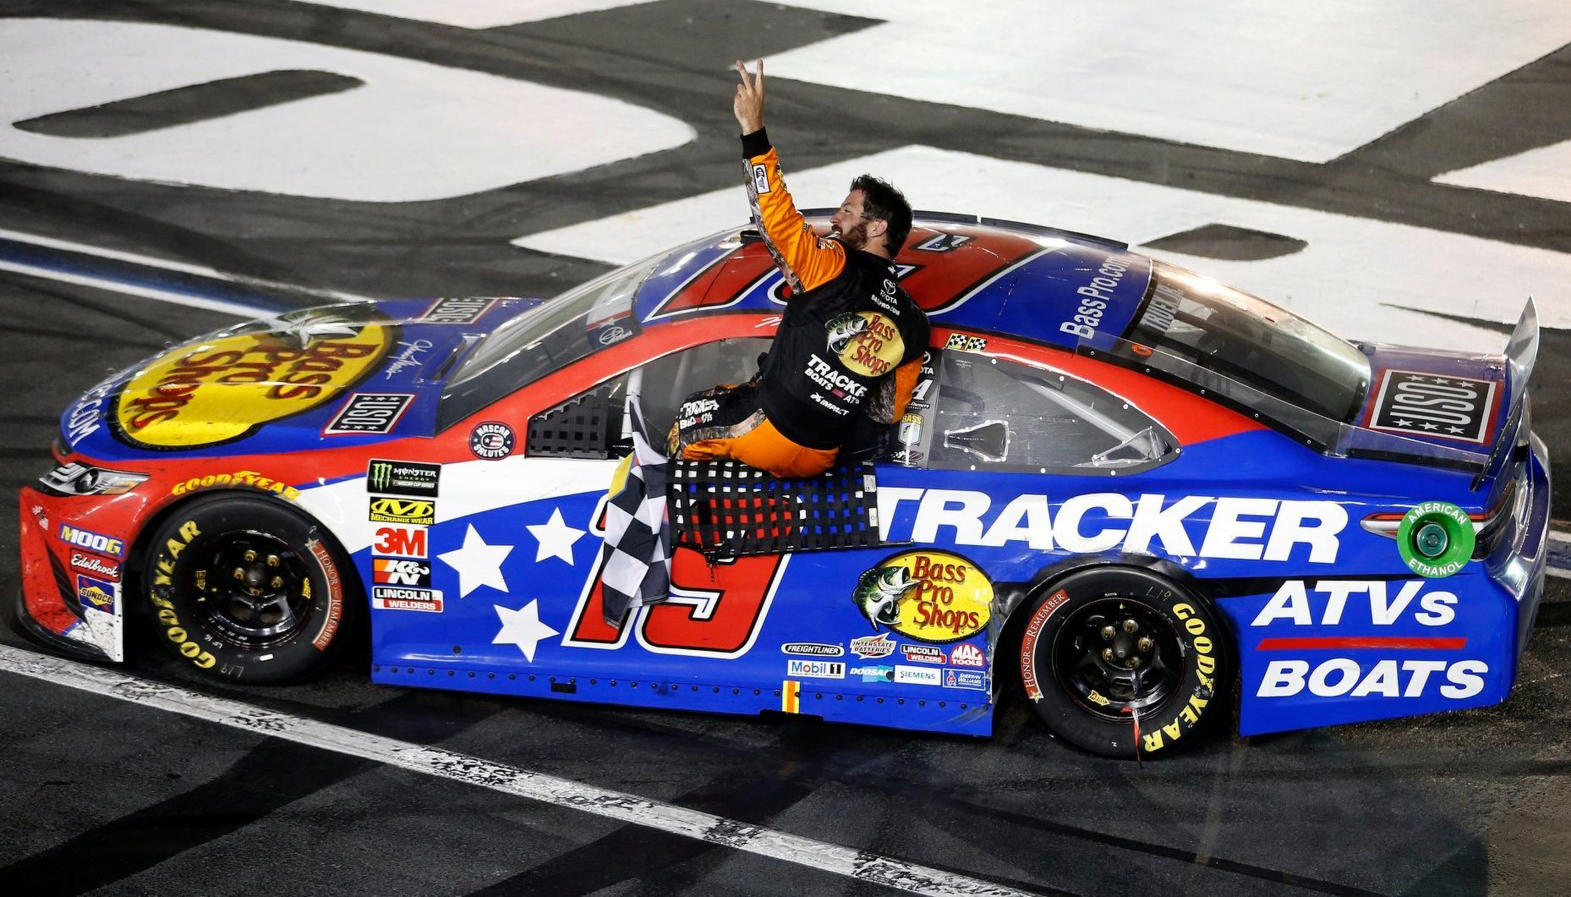 Martin Truex Jr. Is Gunning For Back-to-Back Wins On The Road Course At Sonoma